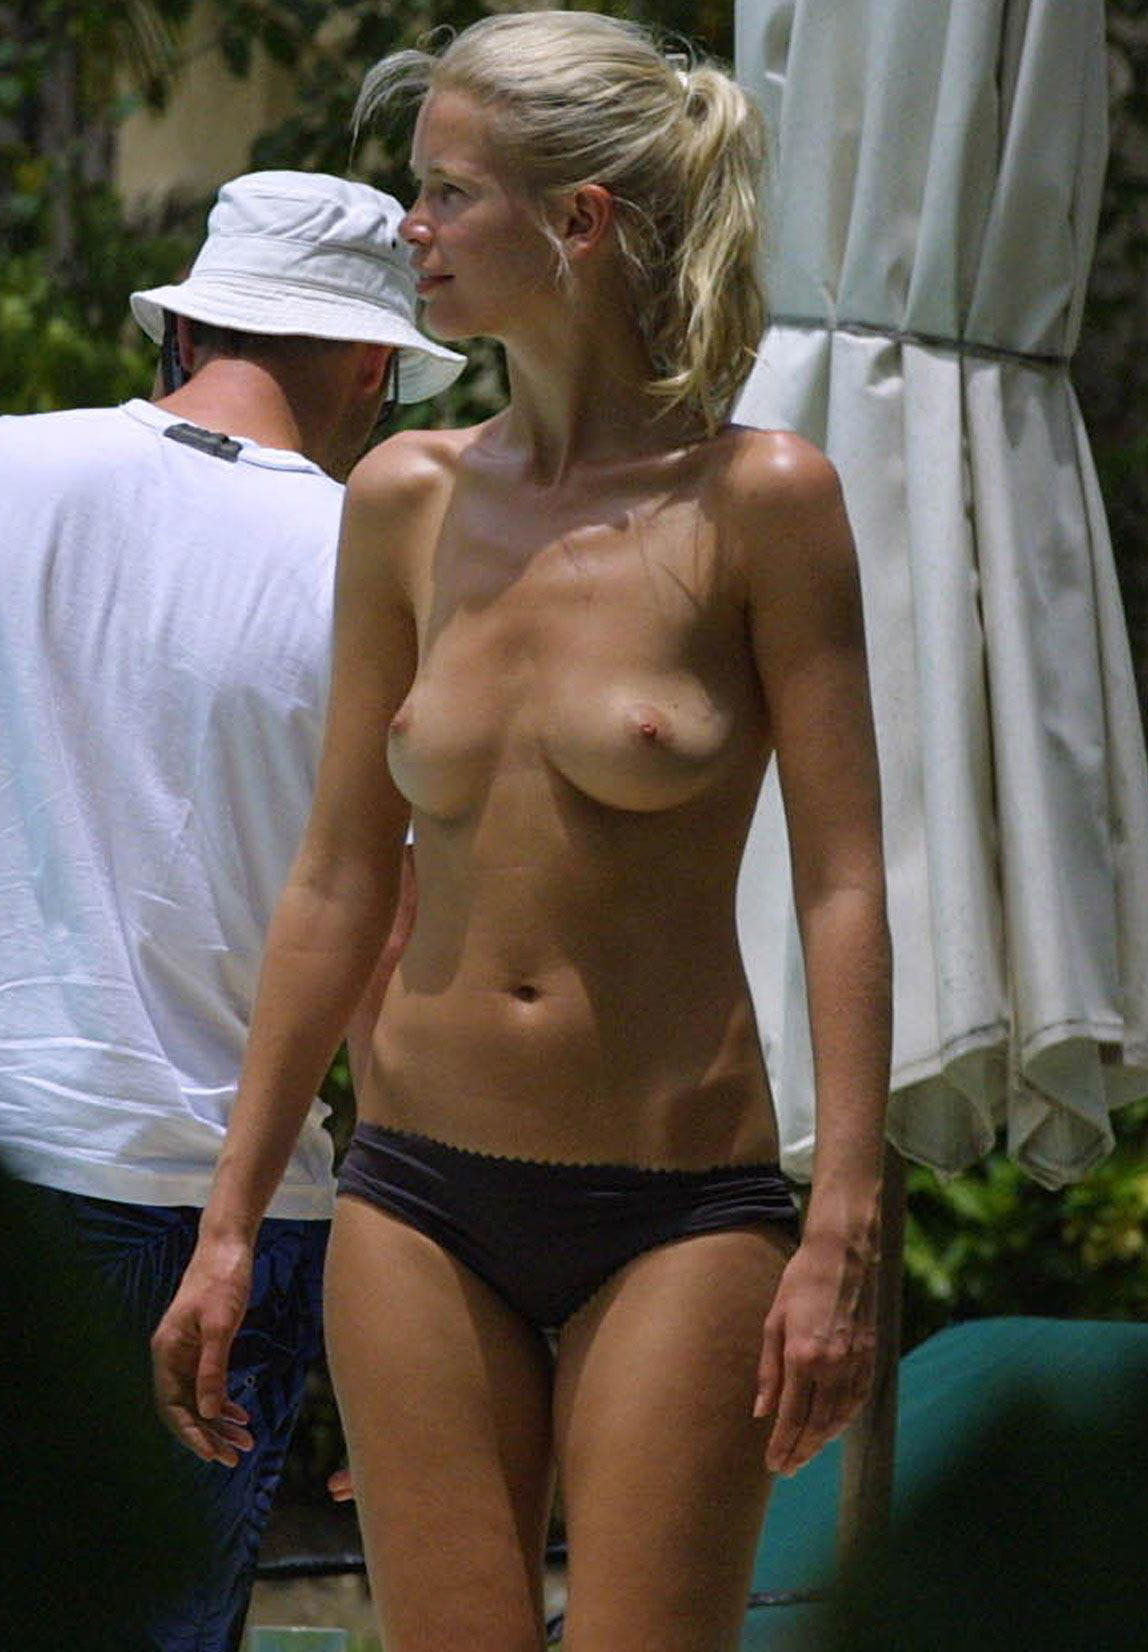 Nude celebs paparazzi video blog — photo 8